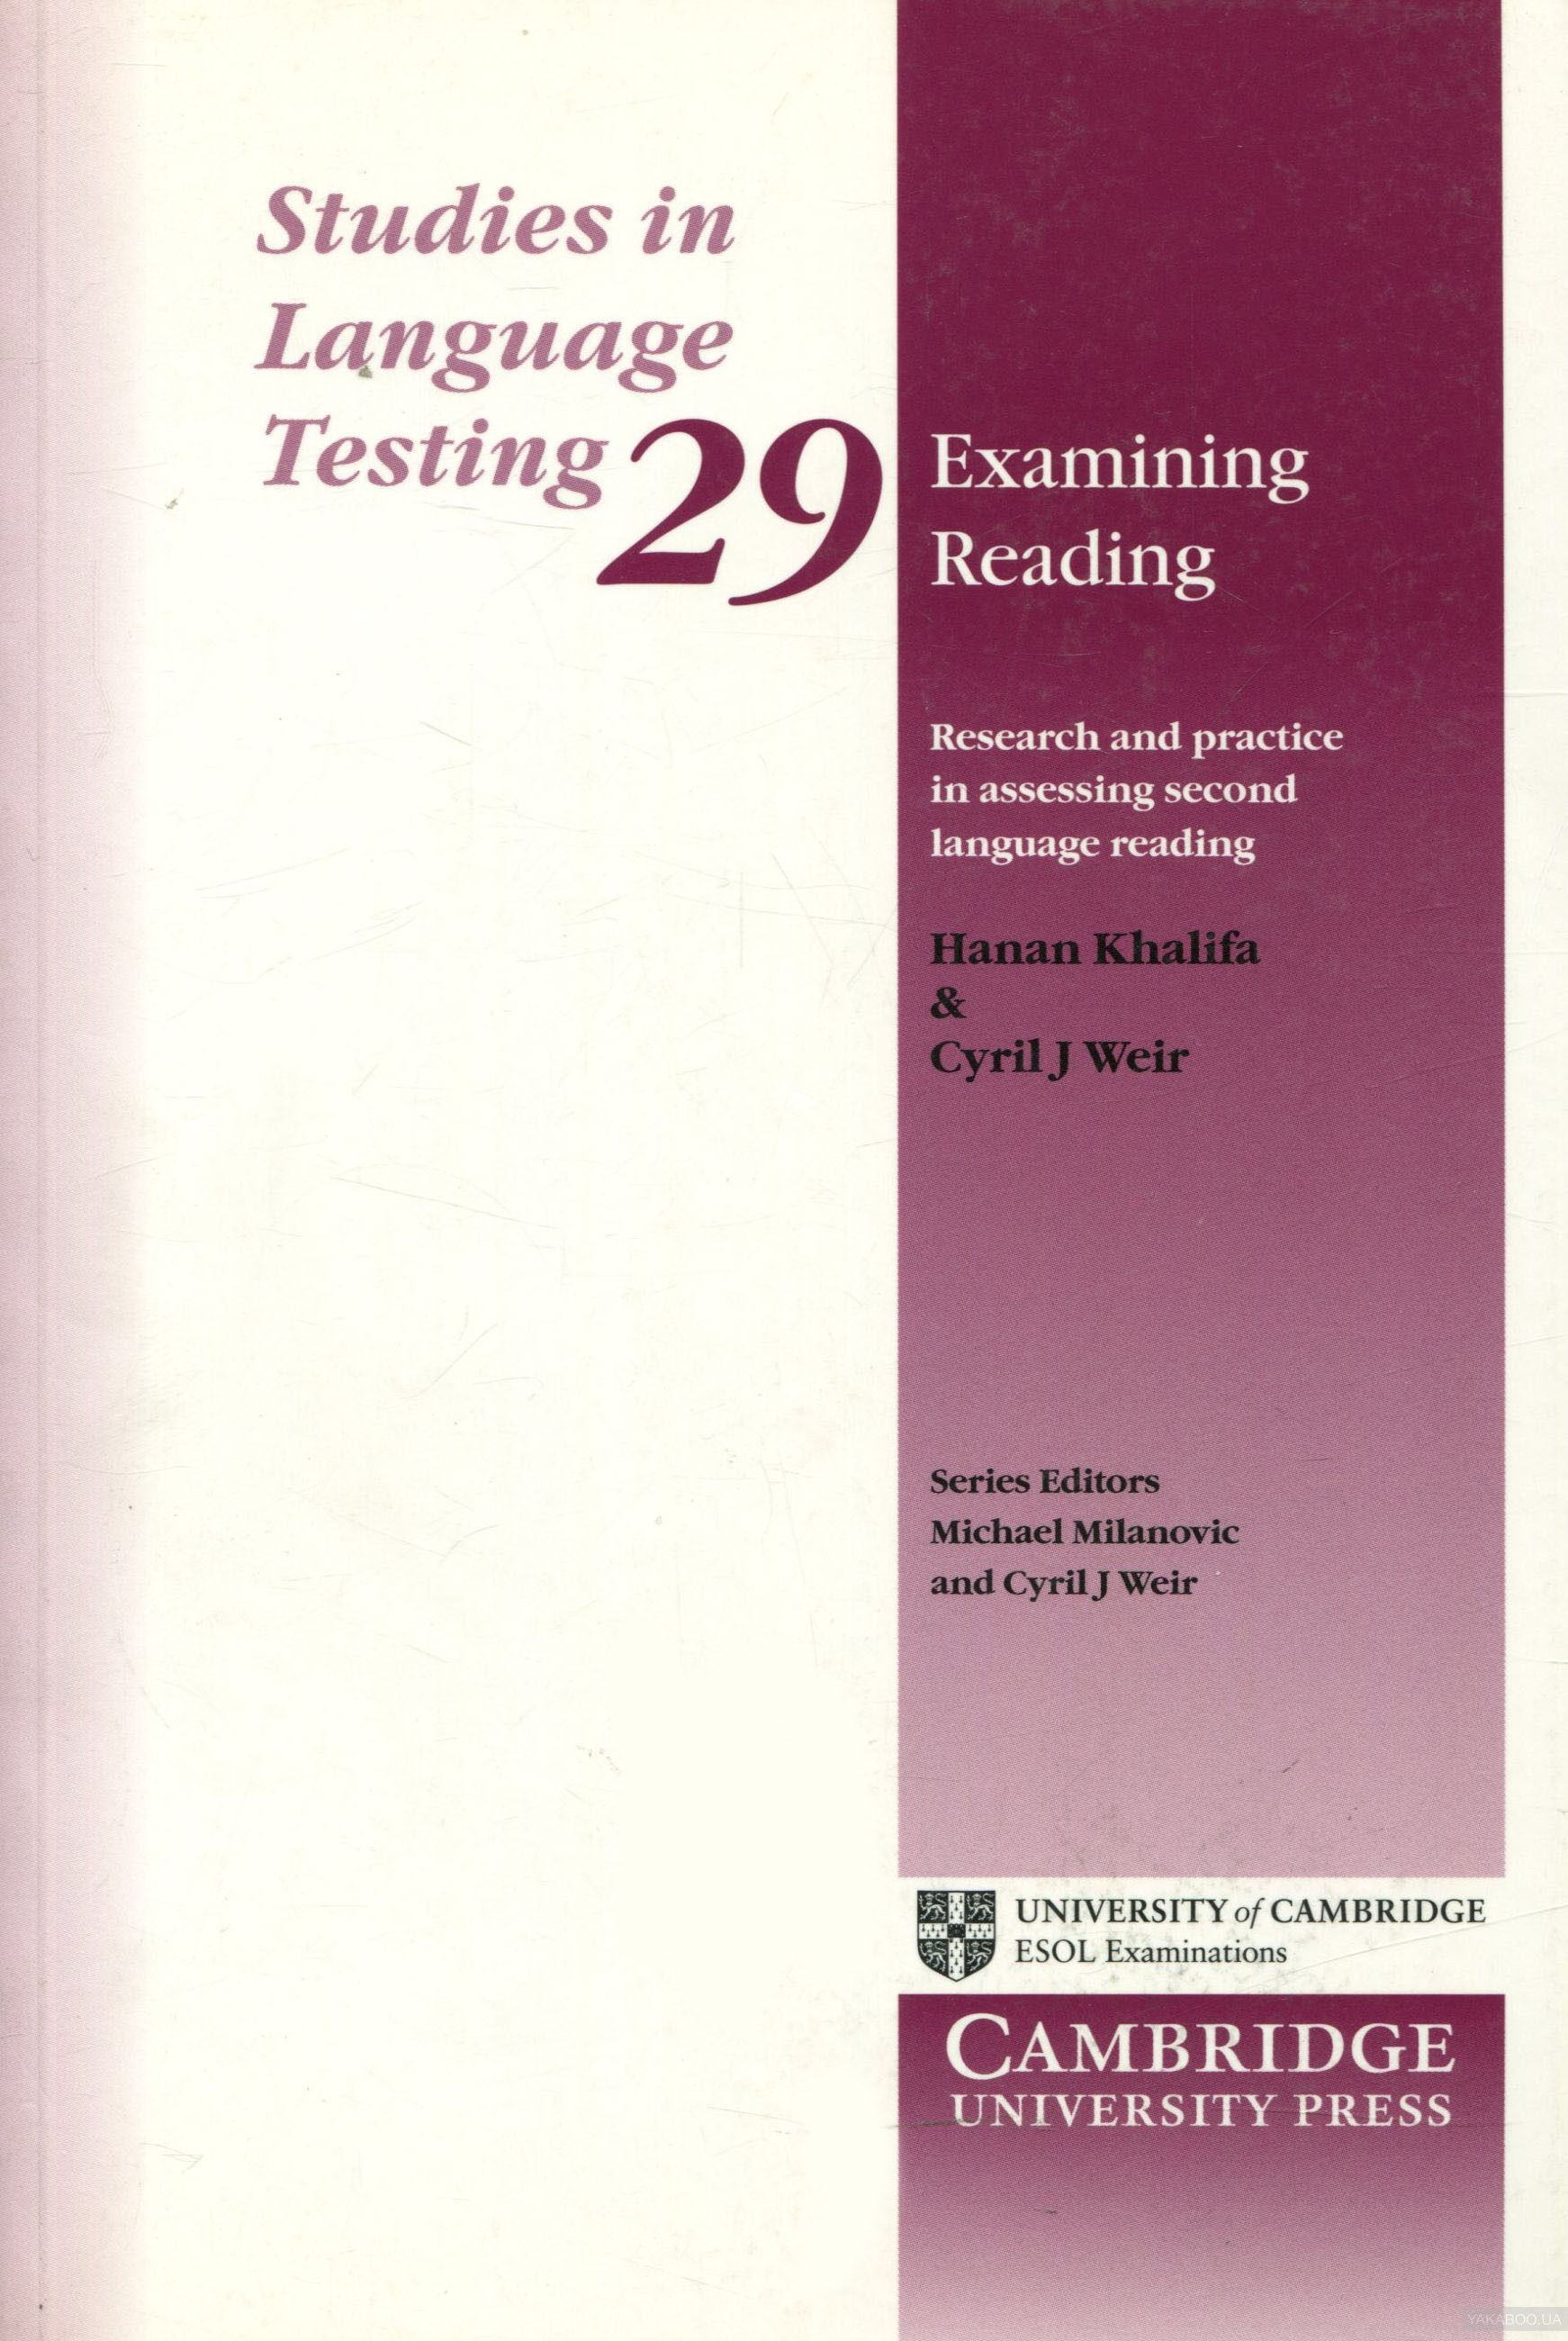 language testing research Language testing and assessment (part i) selected papers from the 15th language testing research colloquium (studies in language testing series.